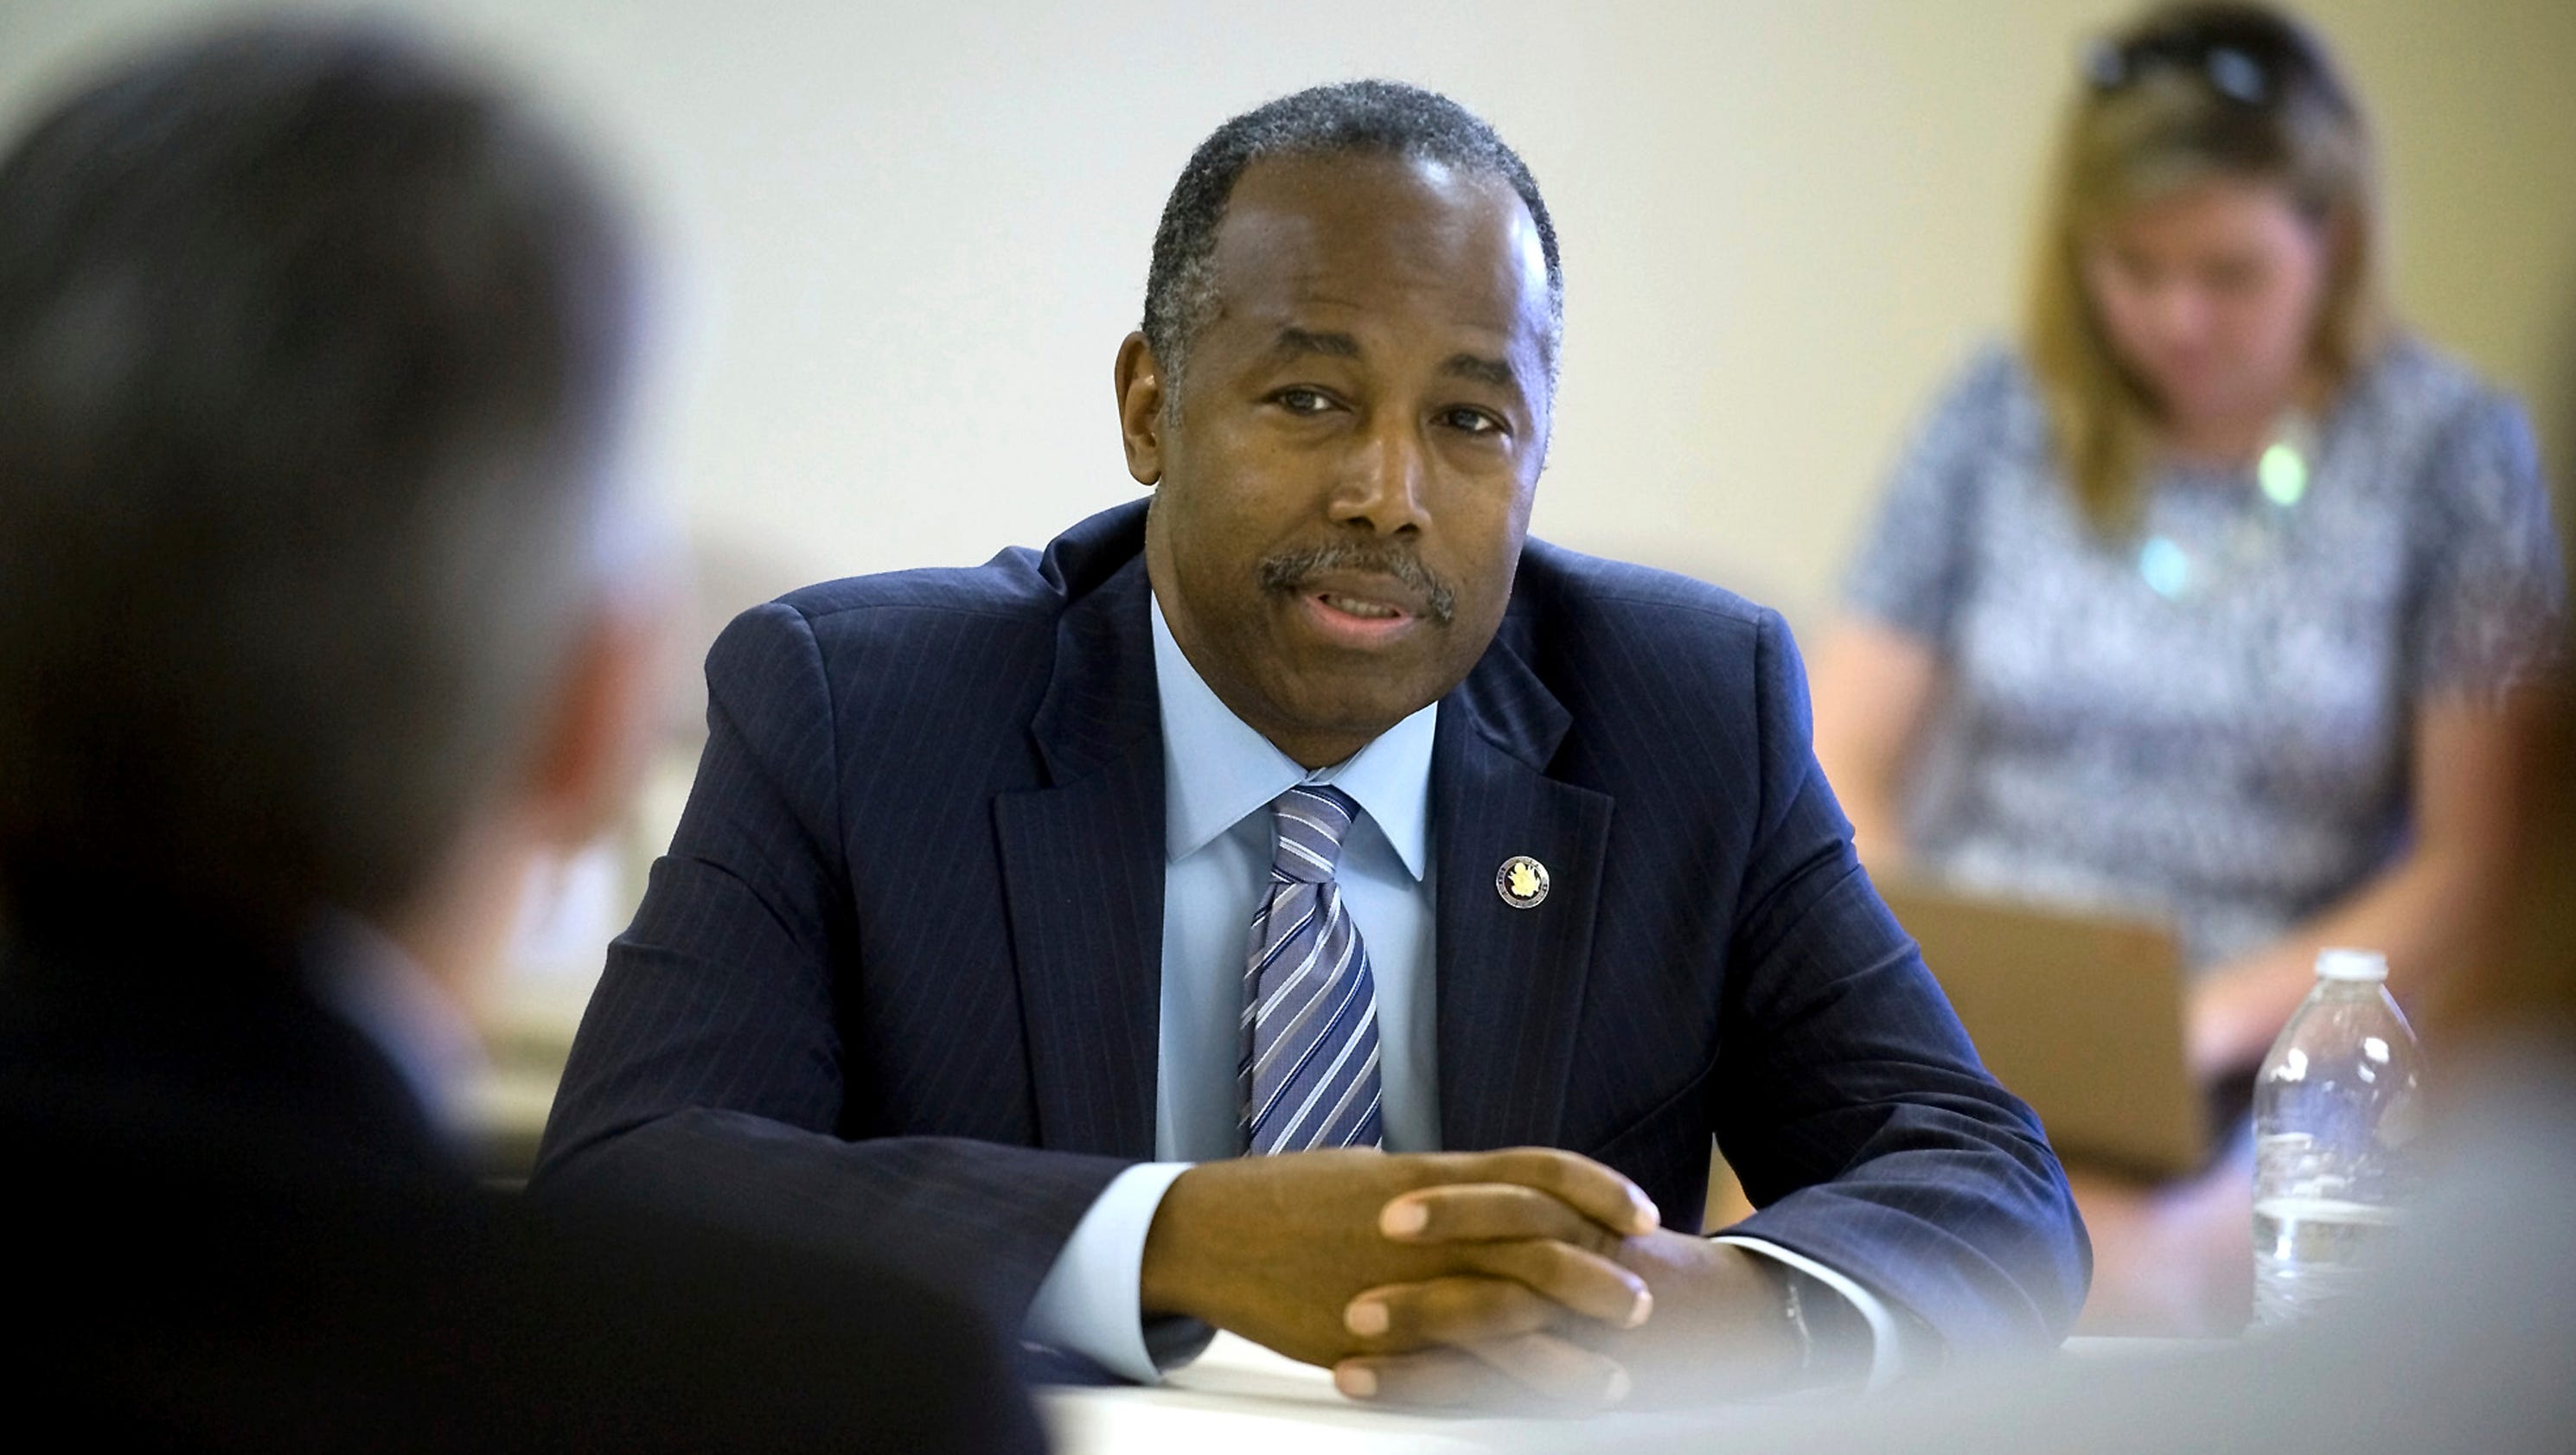 Ben Carson says his home was vandalized with anti Trump message